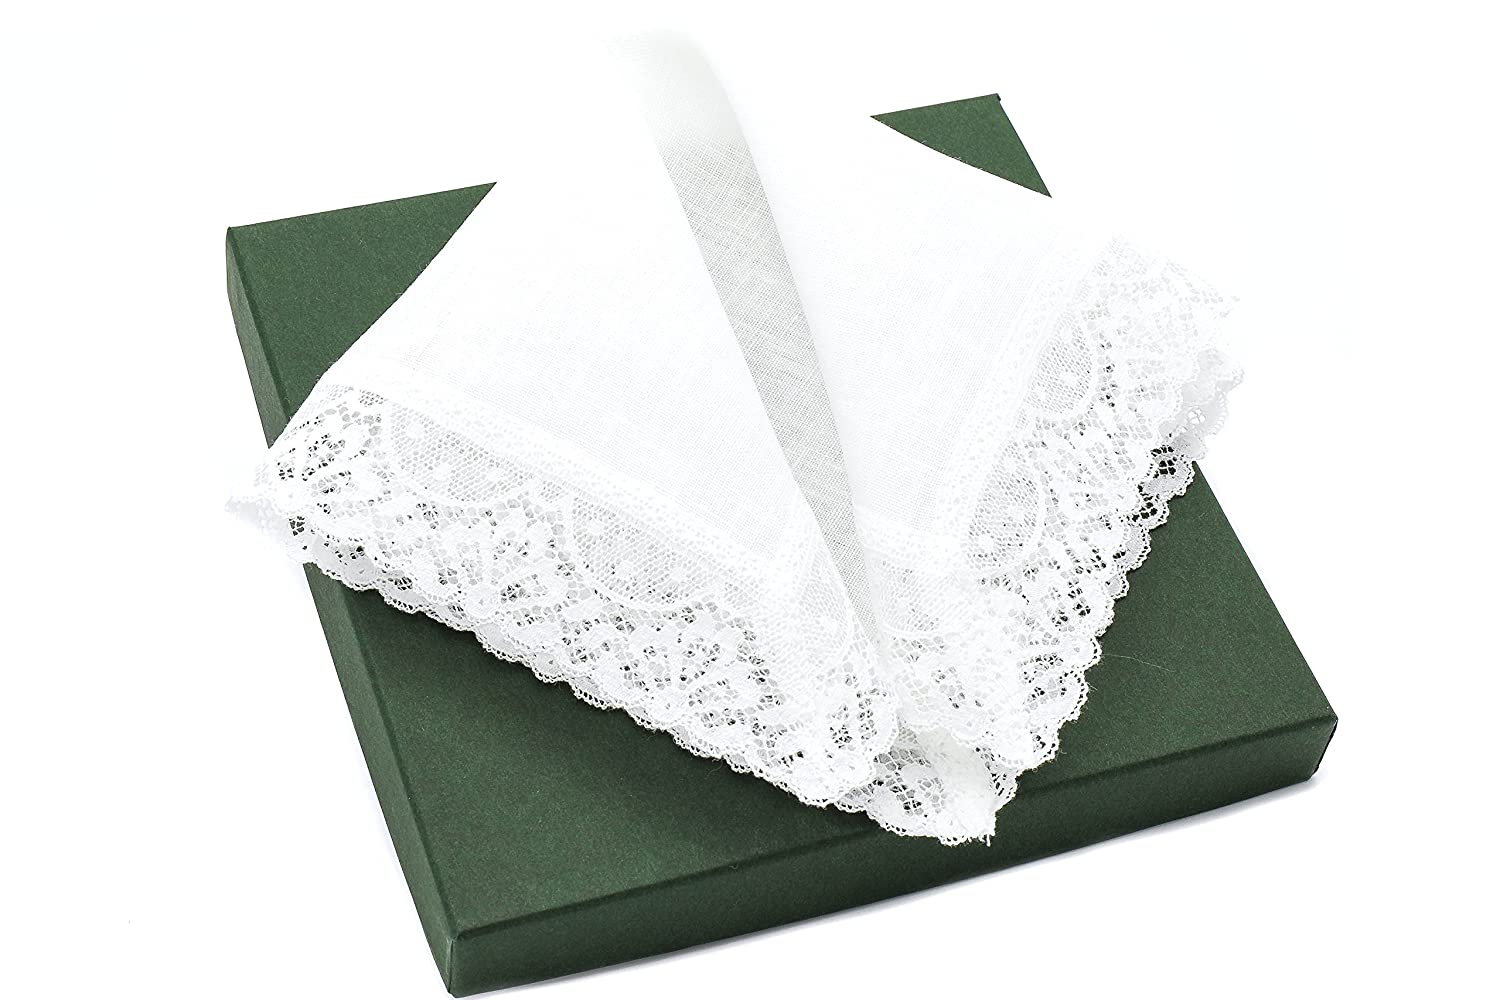 Thomas Ferguson Women's Small White Linen Lace Handkerchief 10 x 10 in Gift Box